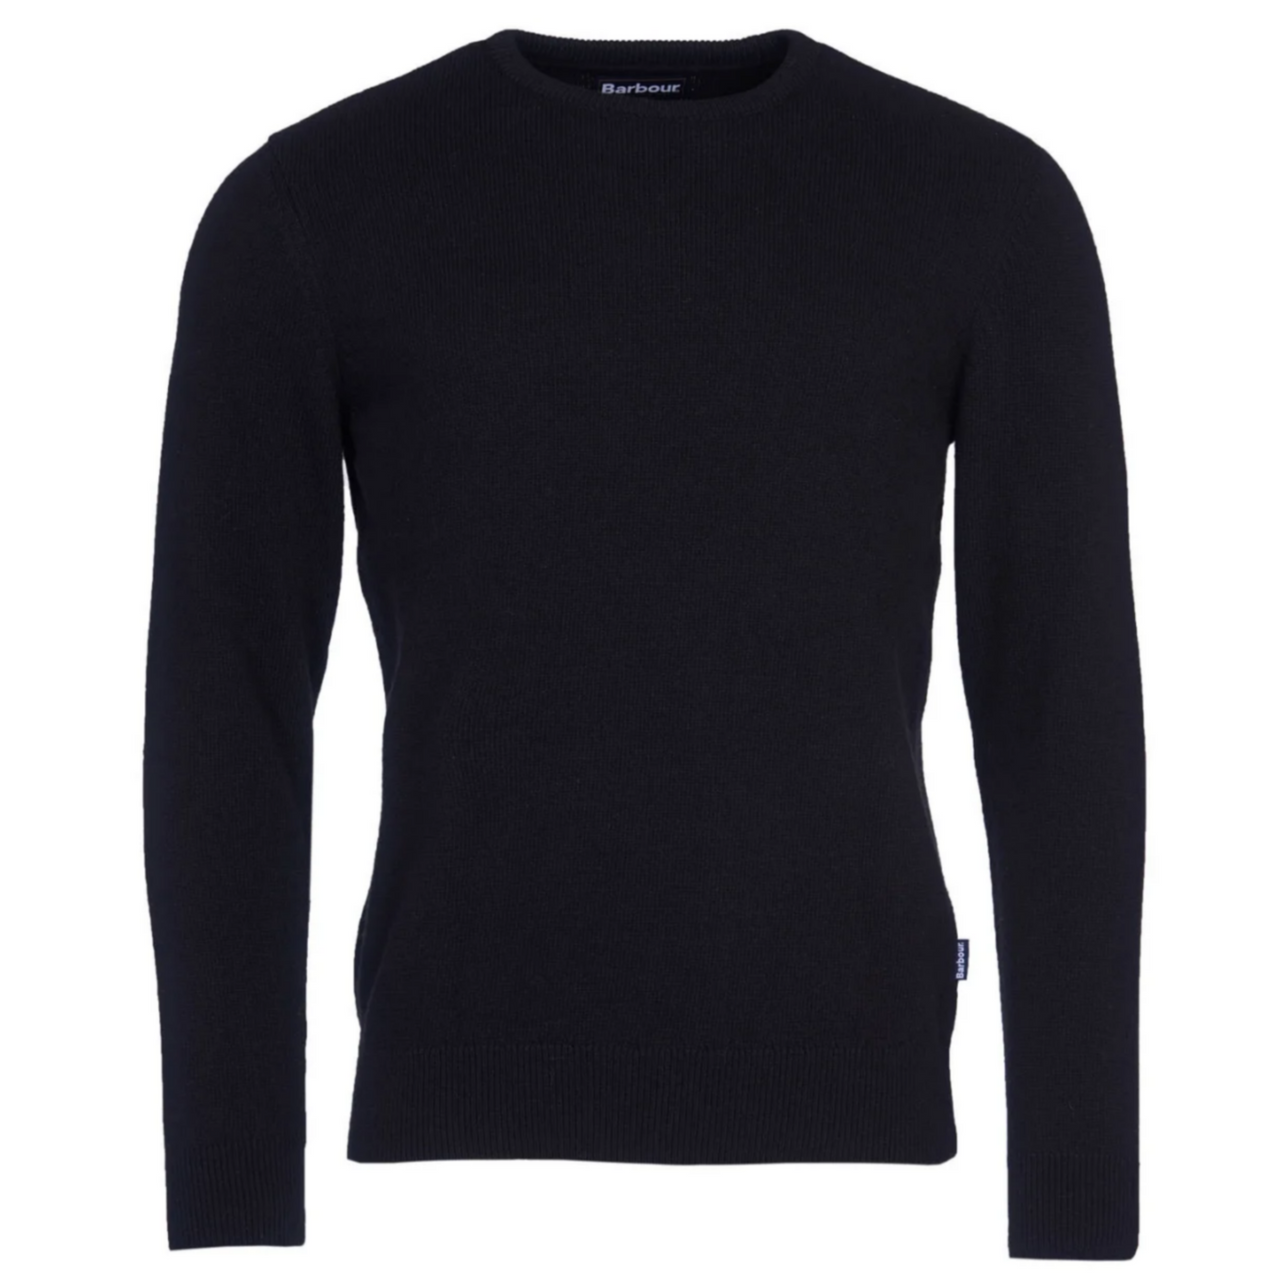 Barbour Harold Wool & Cotton Crew Jumper WITH TARTAN ELBOW PATCHES - Black MKN1112BK11